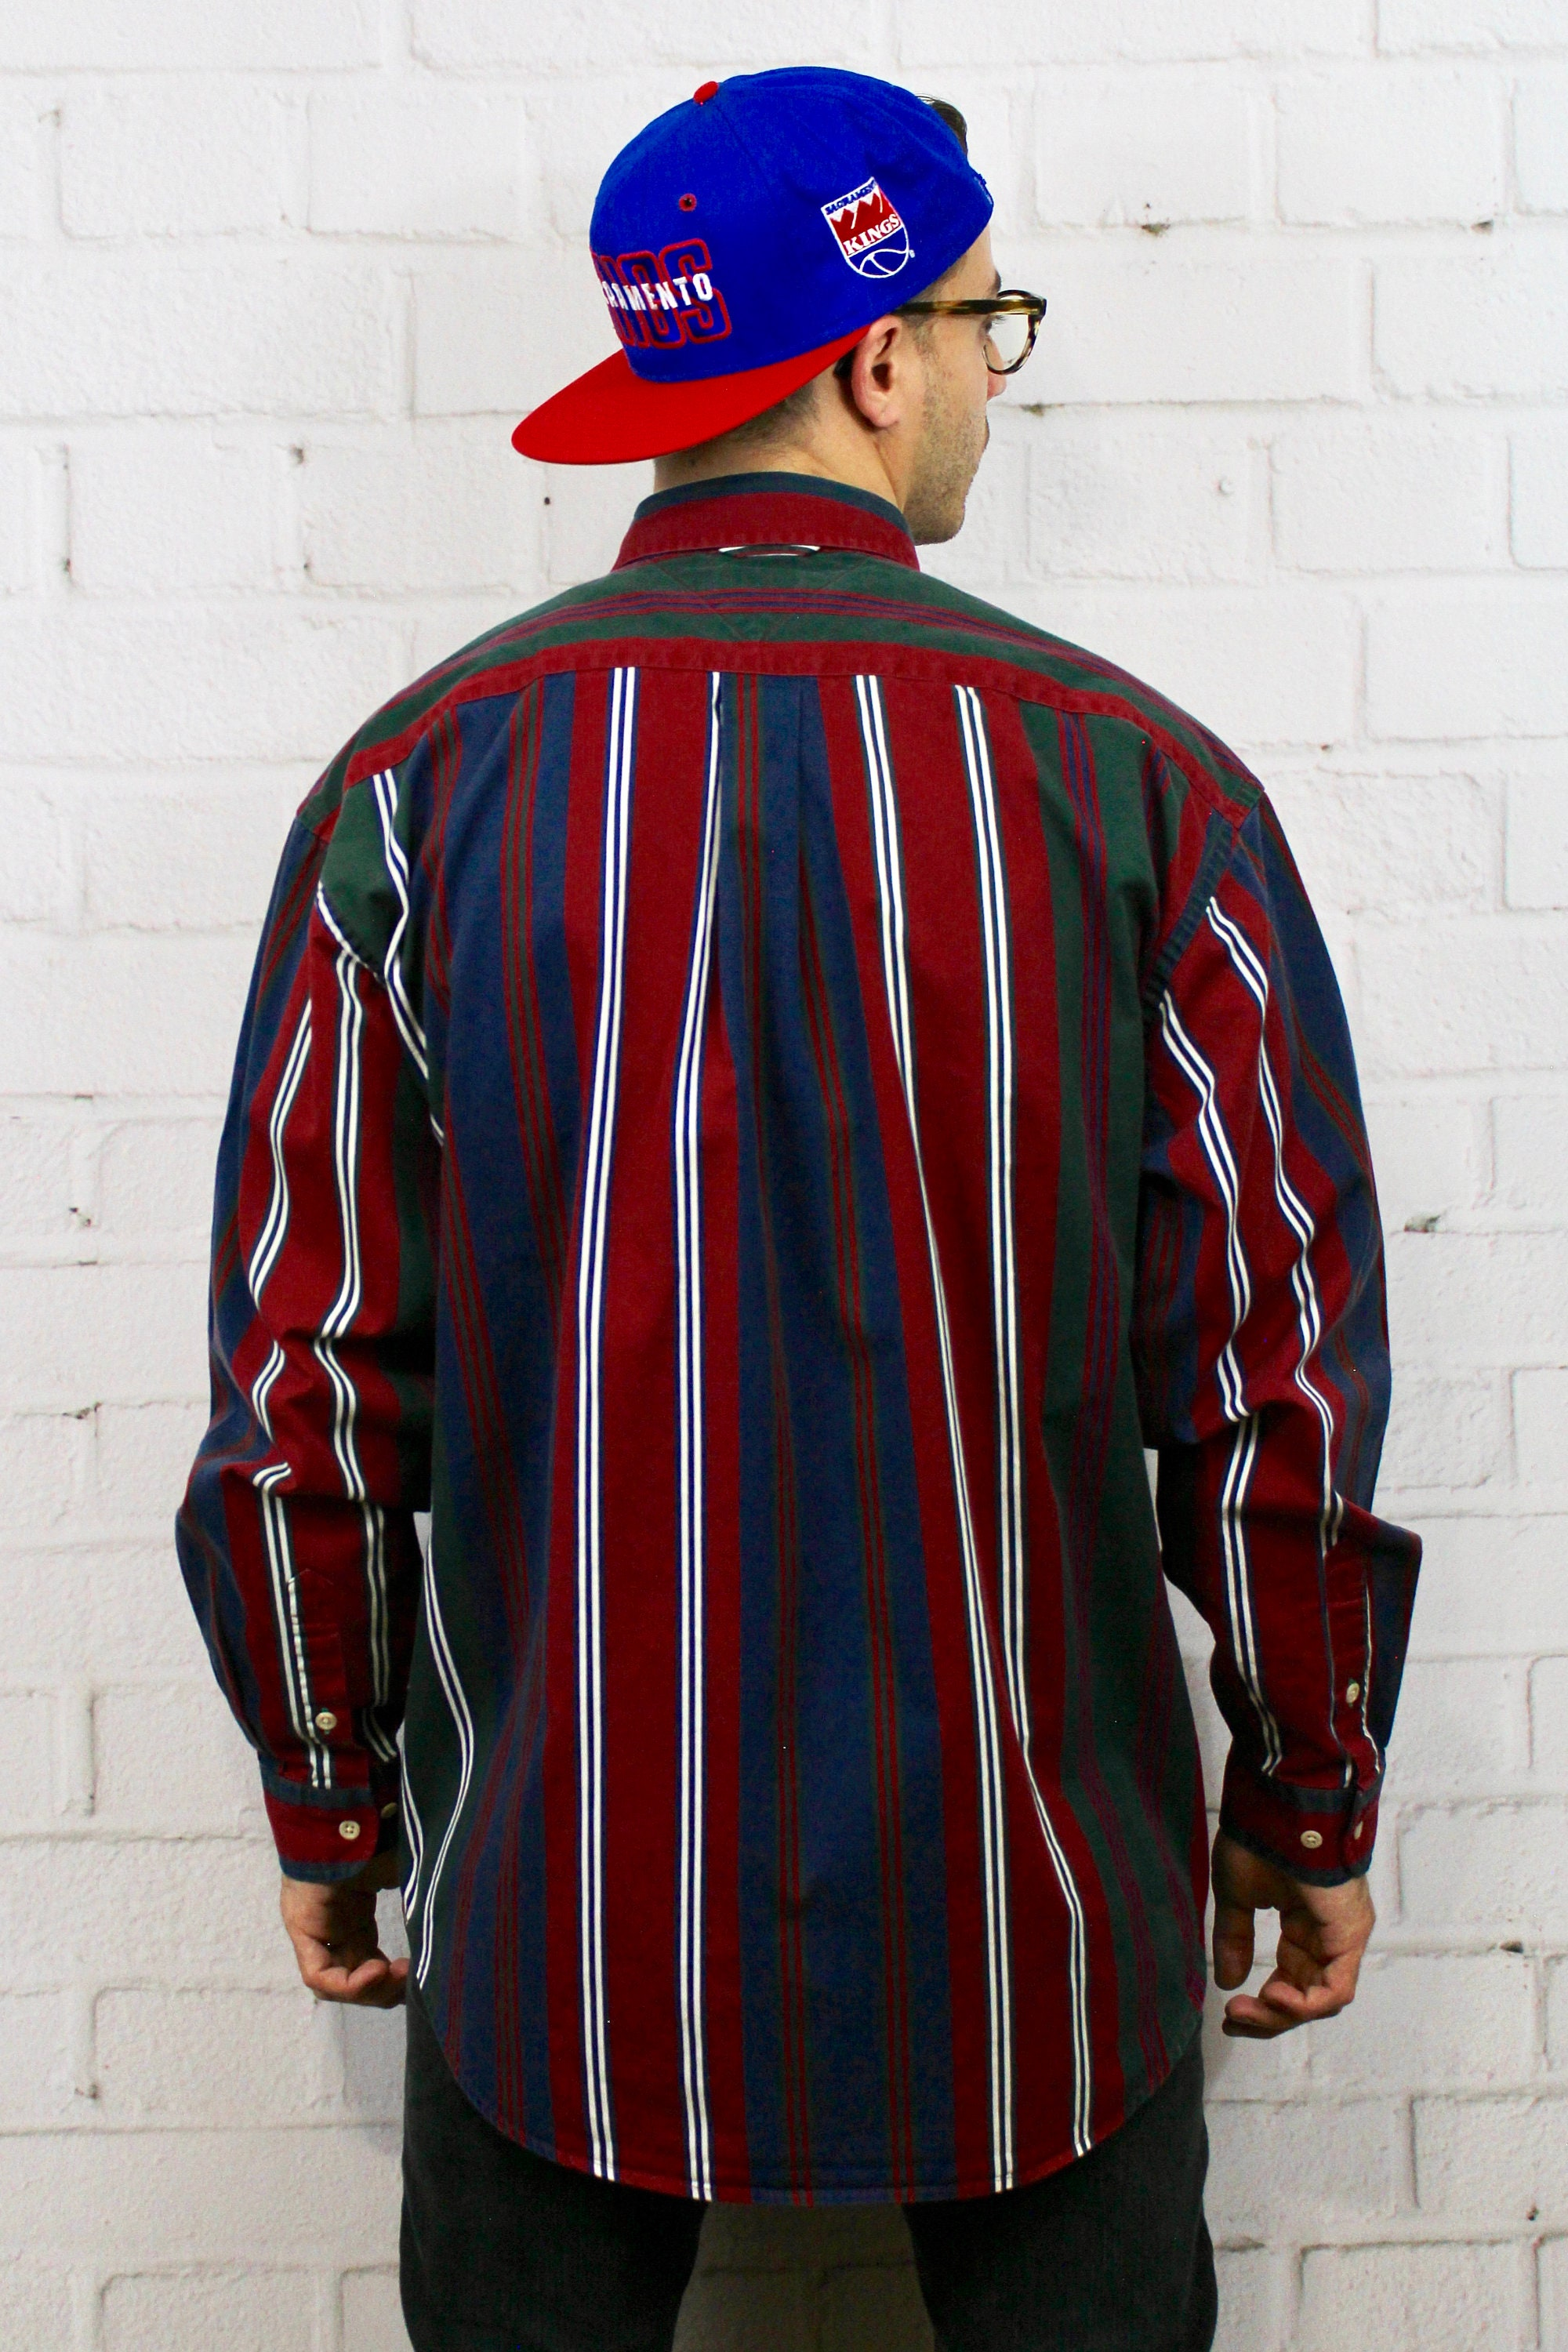 947016ab9 ... Vertical Stripe Shirt / Mens Vintage 80s Dad Polo Style Red Blue Green  Striped Long Sleeve Button Down / Fresh Prince. gallery photo gallery photo